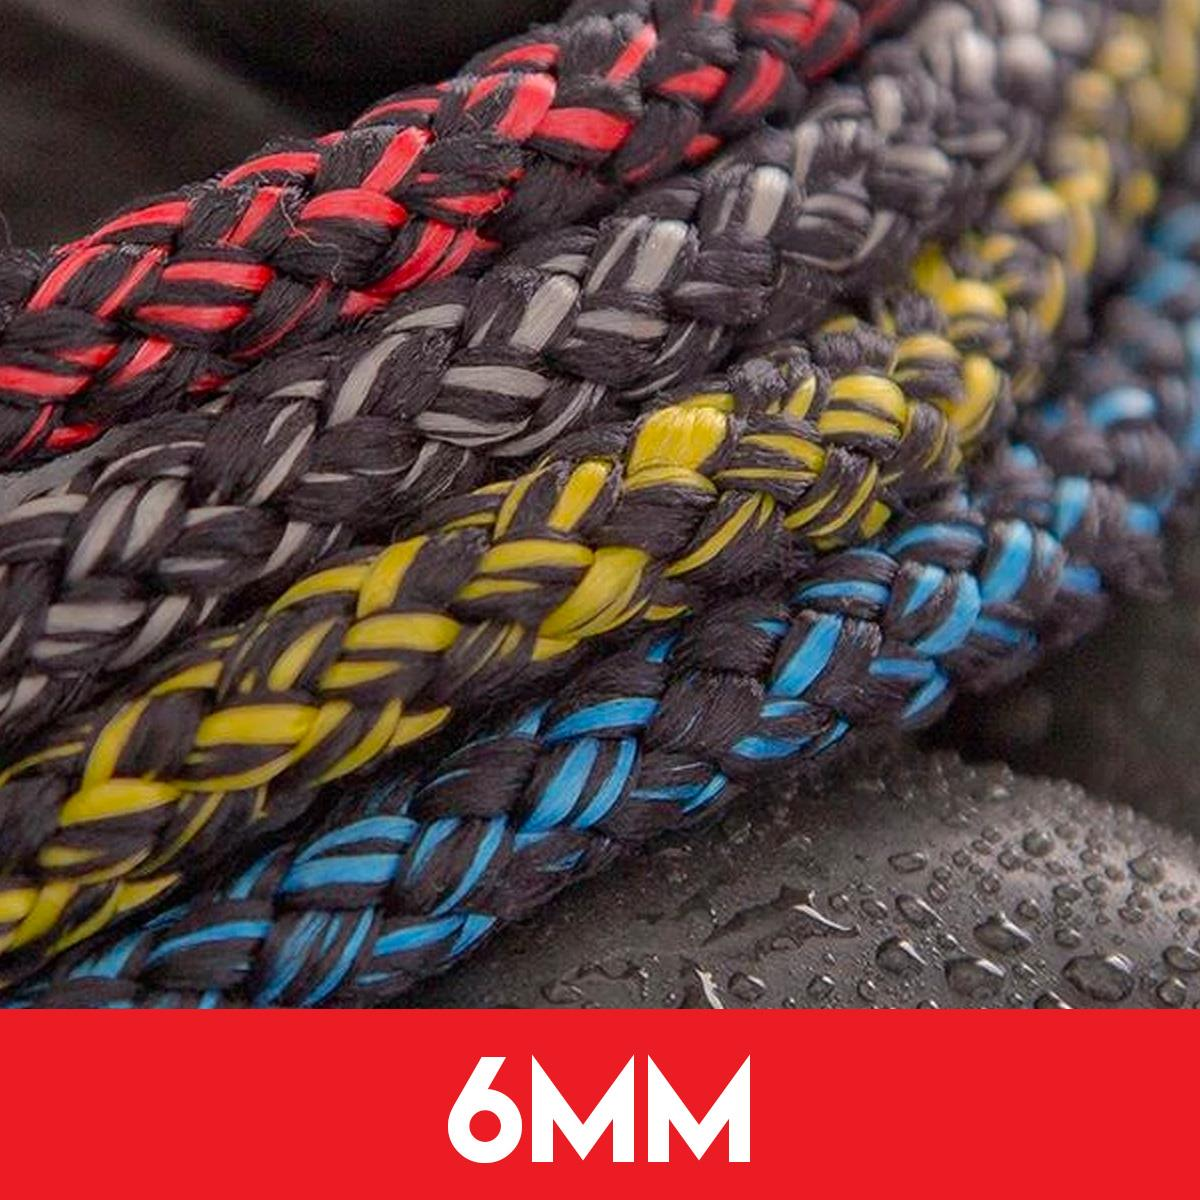 6mm Gottifredi Maffioli Swiftcord Rope